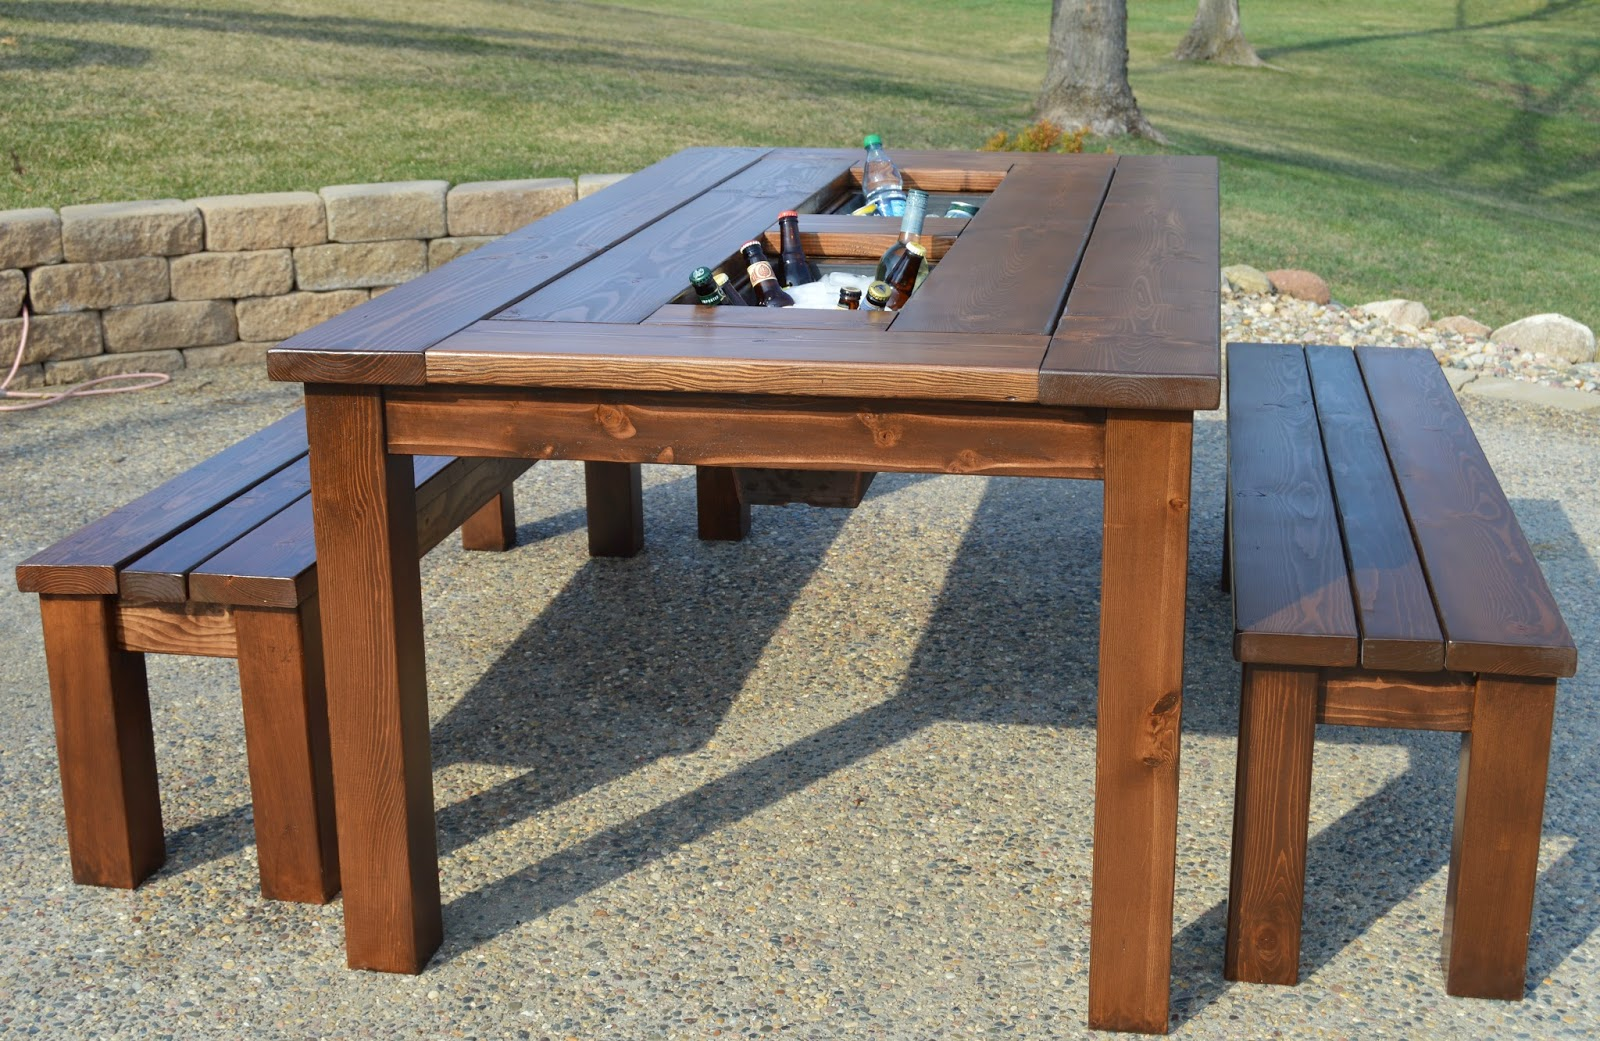 KRUSE 39 S WORKSHOP Patio Party Table With Built In Beer Wine Ice Coolers